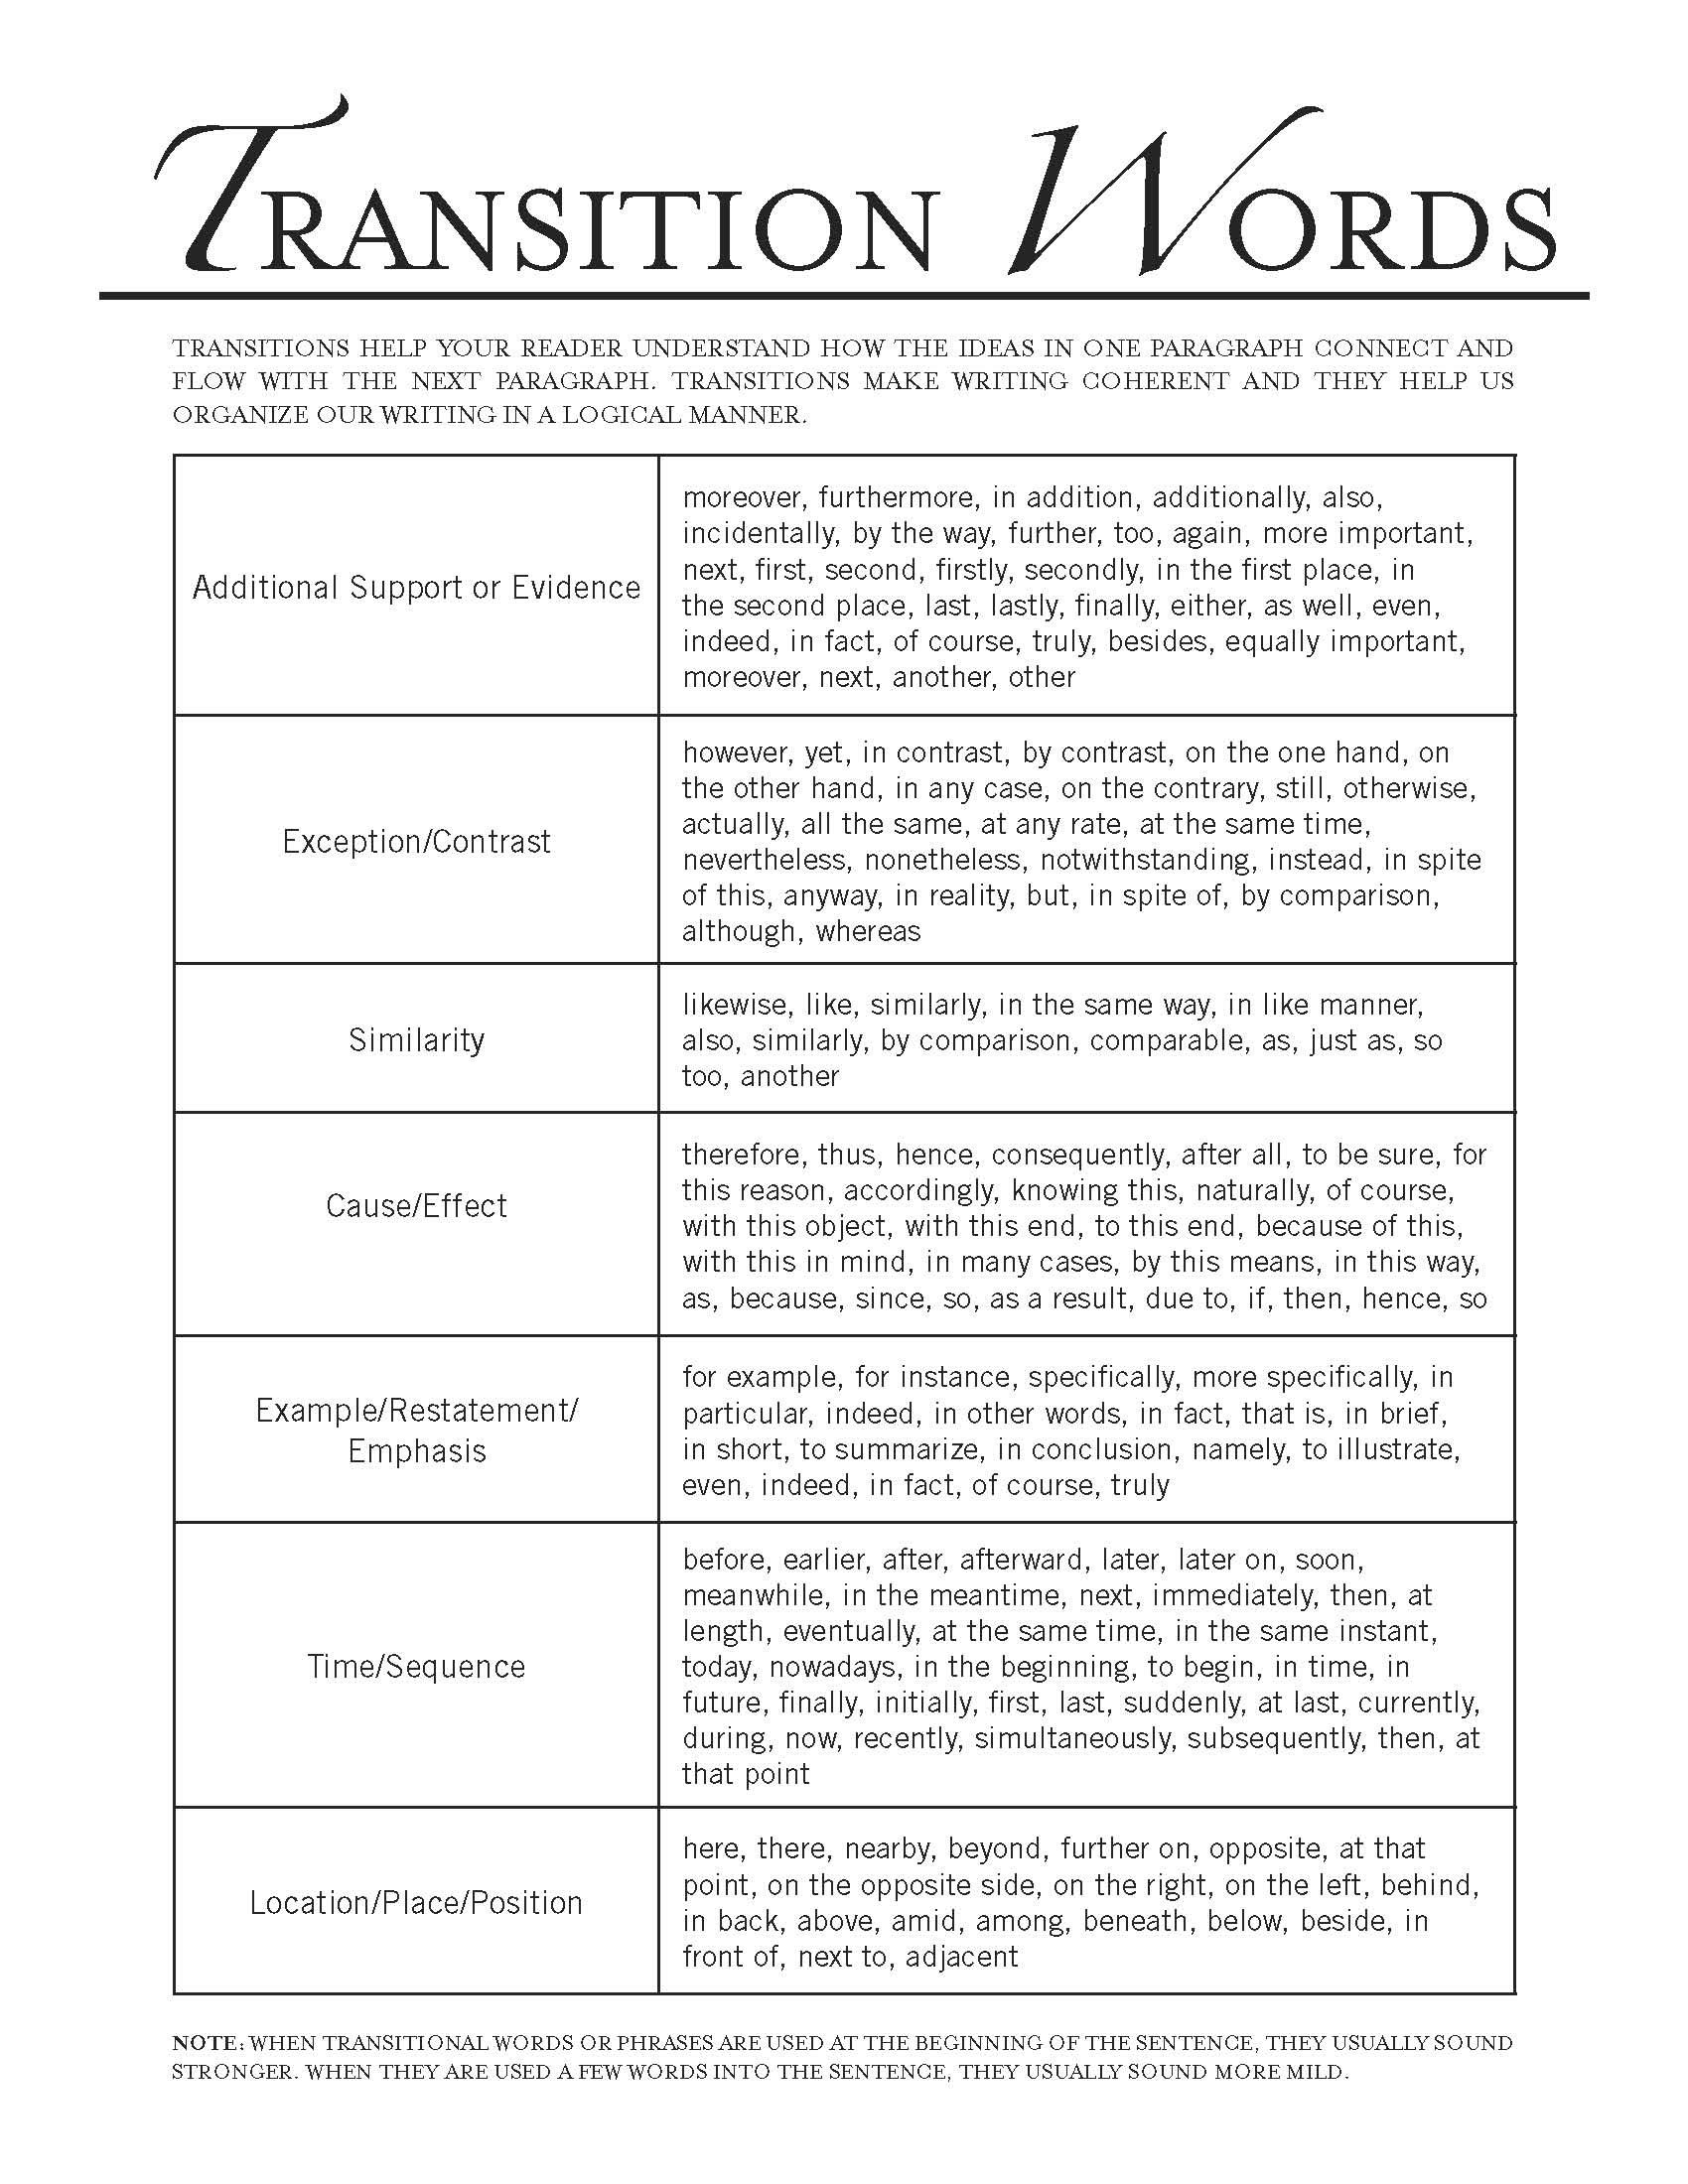 017 Another Word For Conclusion An Essay Example One Essays This Ridiculous Paragraph By Unc Words To Start In Persuasive Transitionsl1 P Off Sentence Argumentative The First Wonderful Full